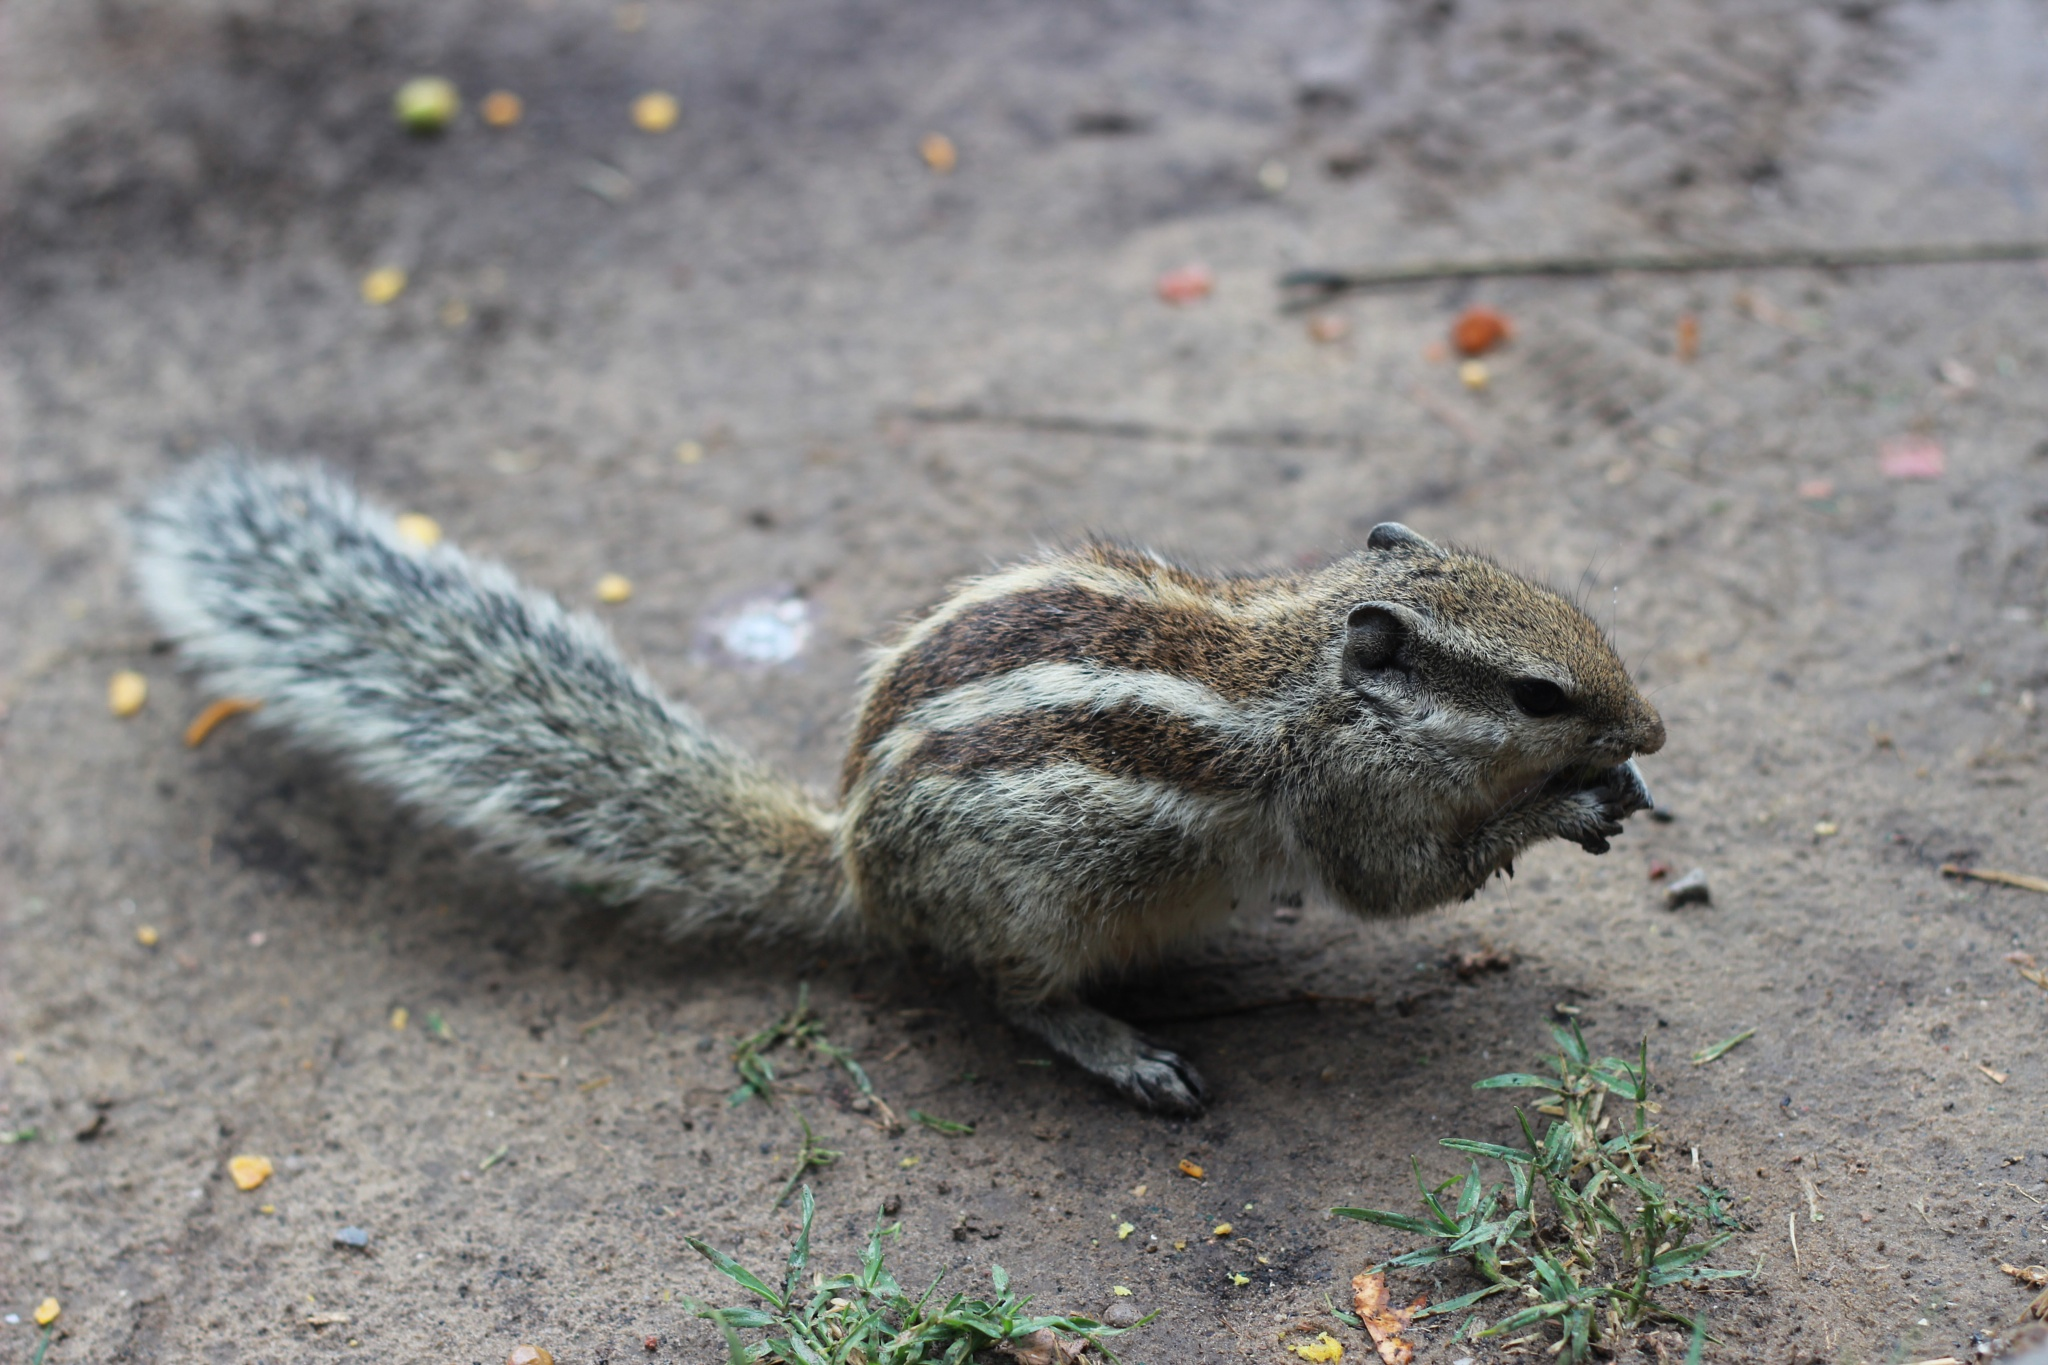 The Squirrel by Rabnoor Singh